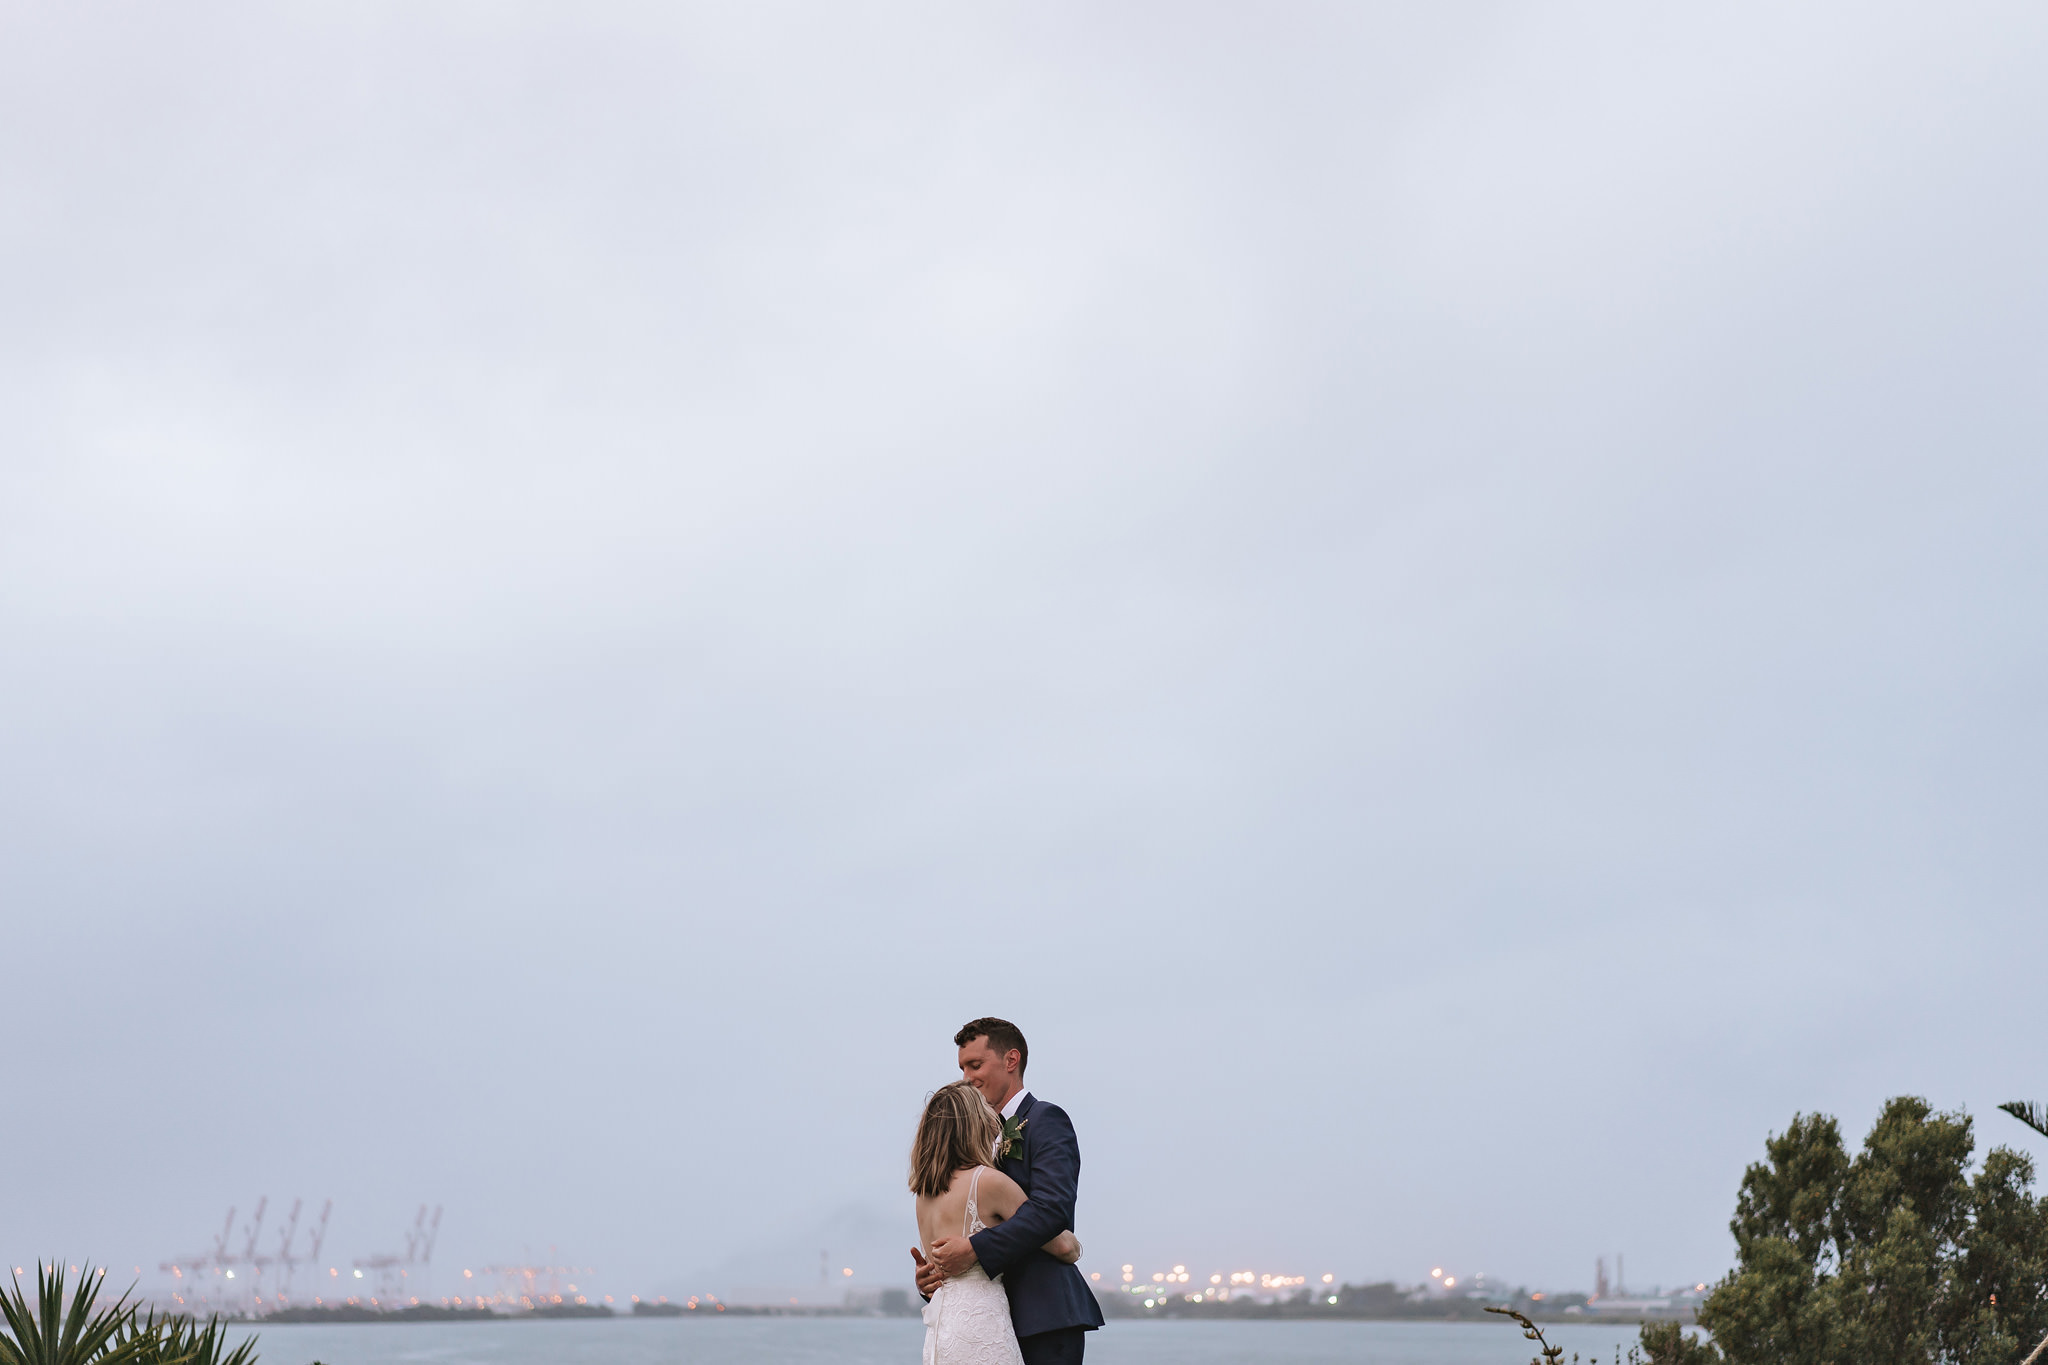 newfound-s-a-tauranga-new-zealand-wedding-photography-924